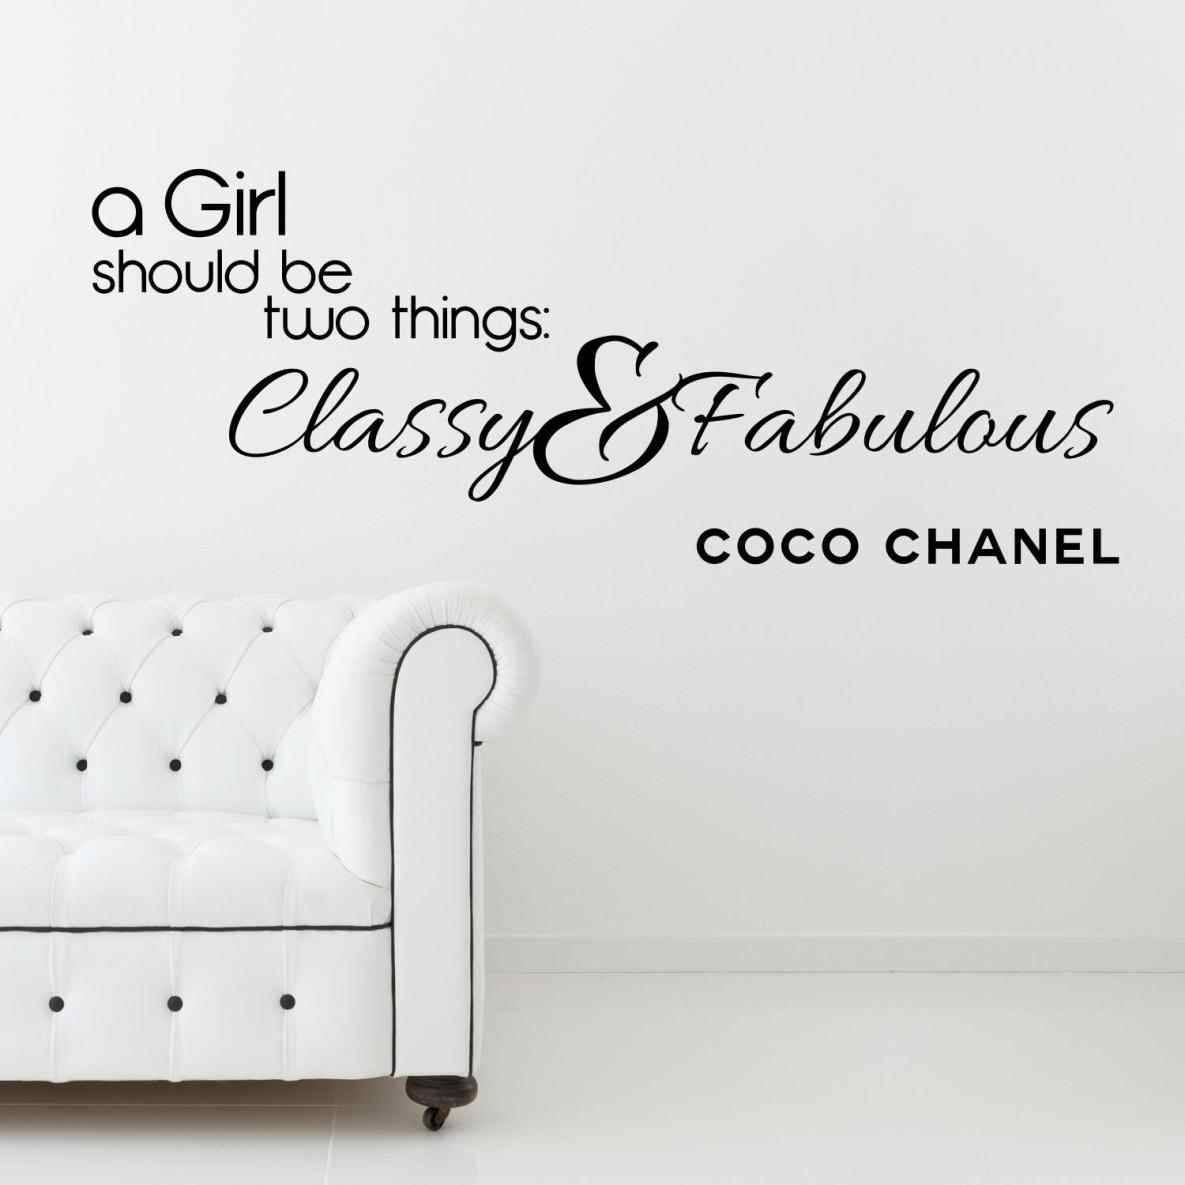 Art And Get Fresh Off The Press Vinyl Wall Decal Quote Inspiration For Most Recent Coco Chanel Wall Decals (View 4 of 25)